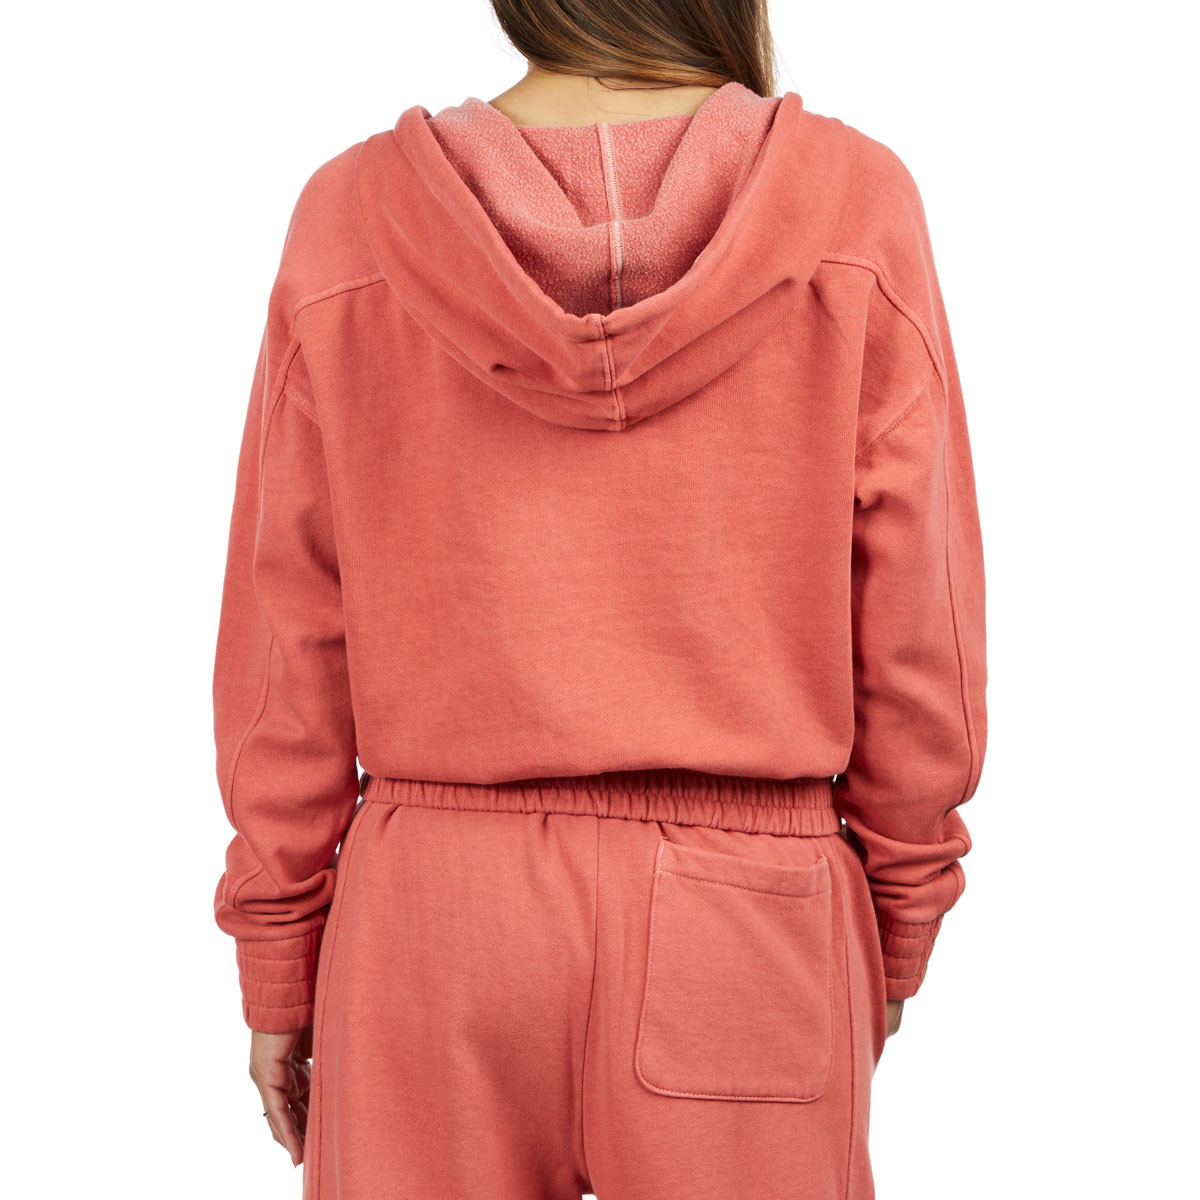 556c48fc696a Champion Womens Vintage Dyed Fleece 1 2 Zip Hoodie - Picante Pink